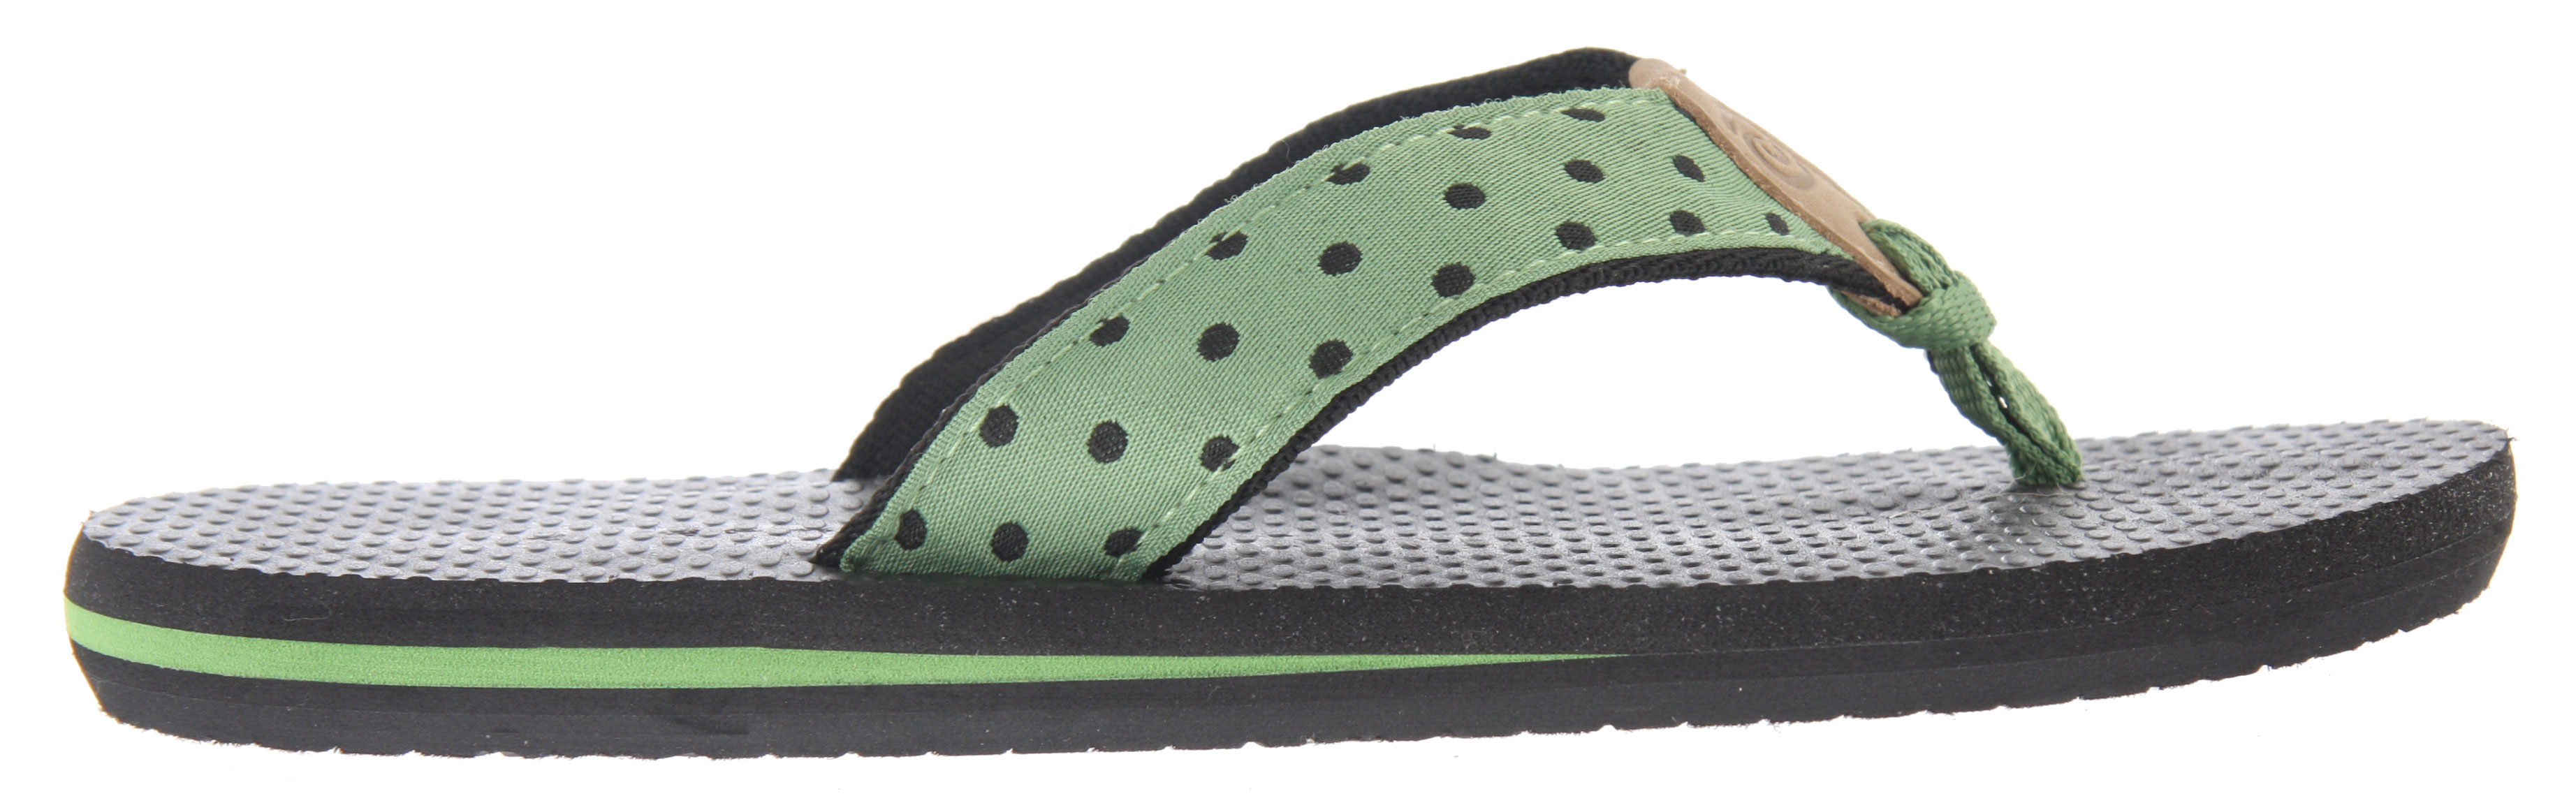 Surf Key Features of the Rafters Cloudbreak Ribbon Sandals : Tubular nylon webbing upper Super soft EVA footbed - $17.95